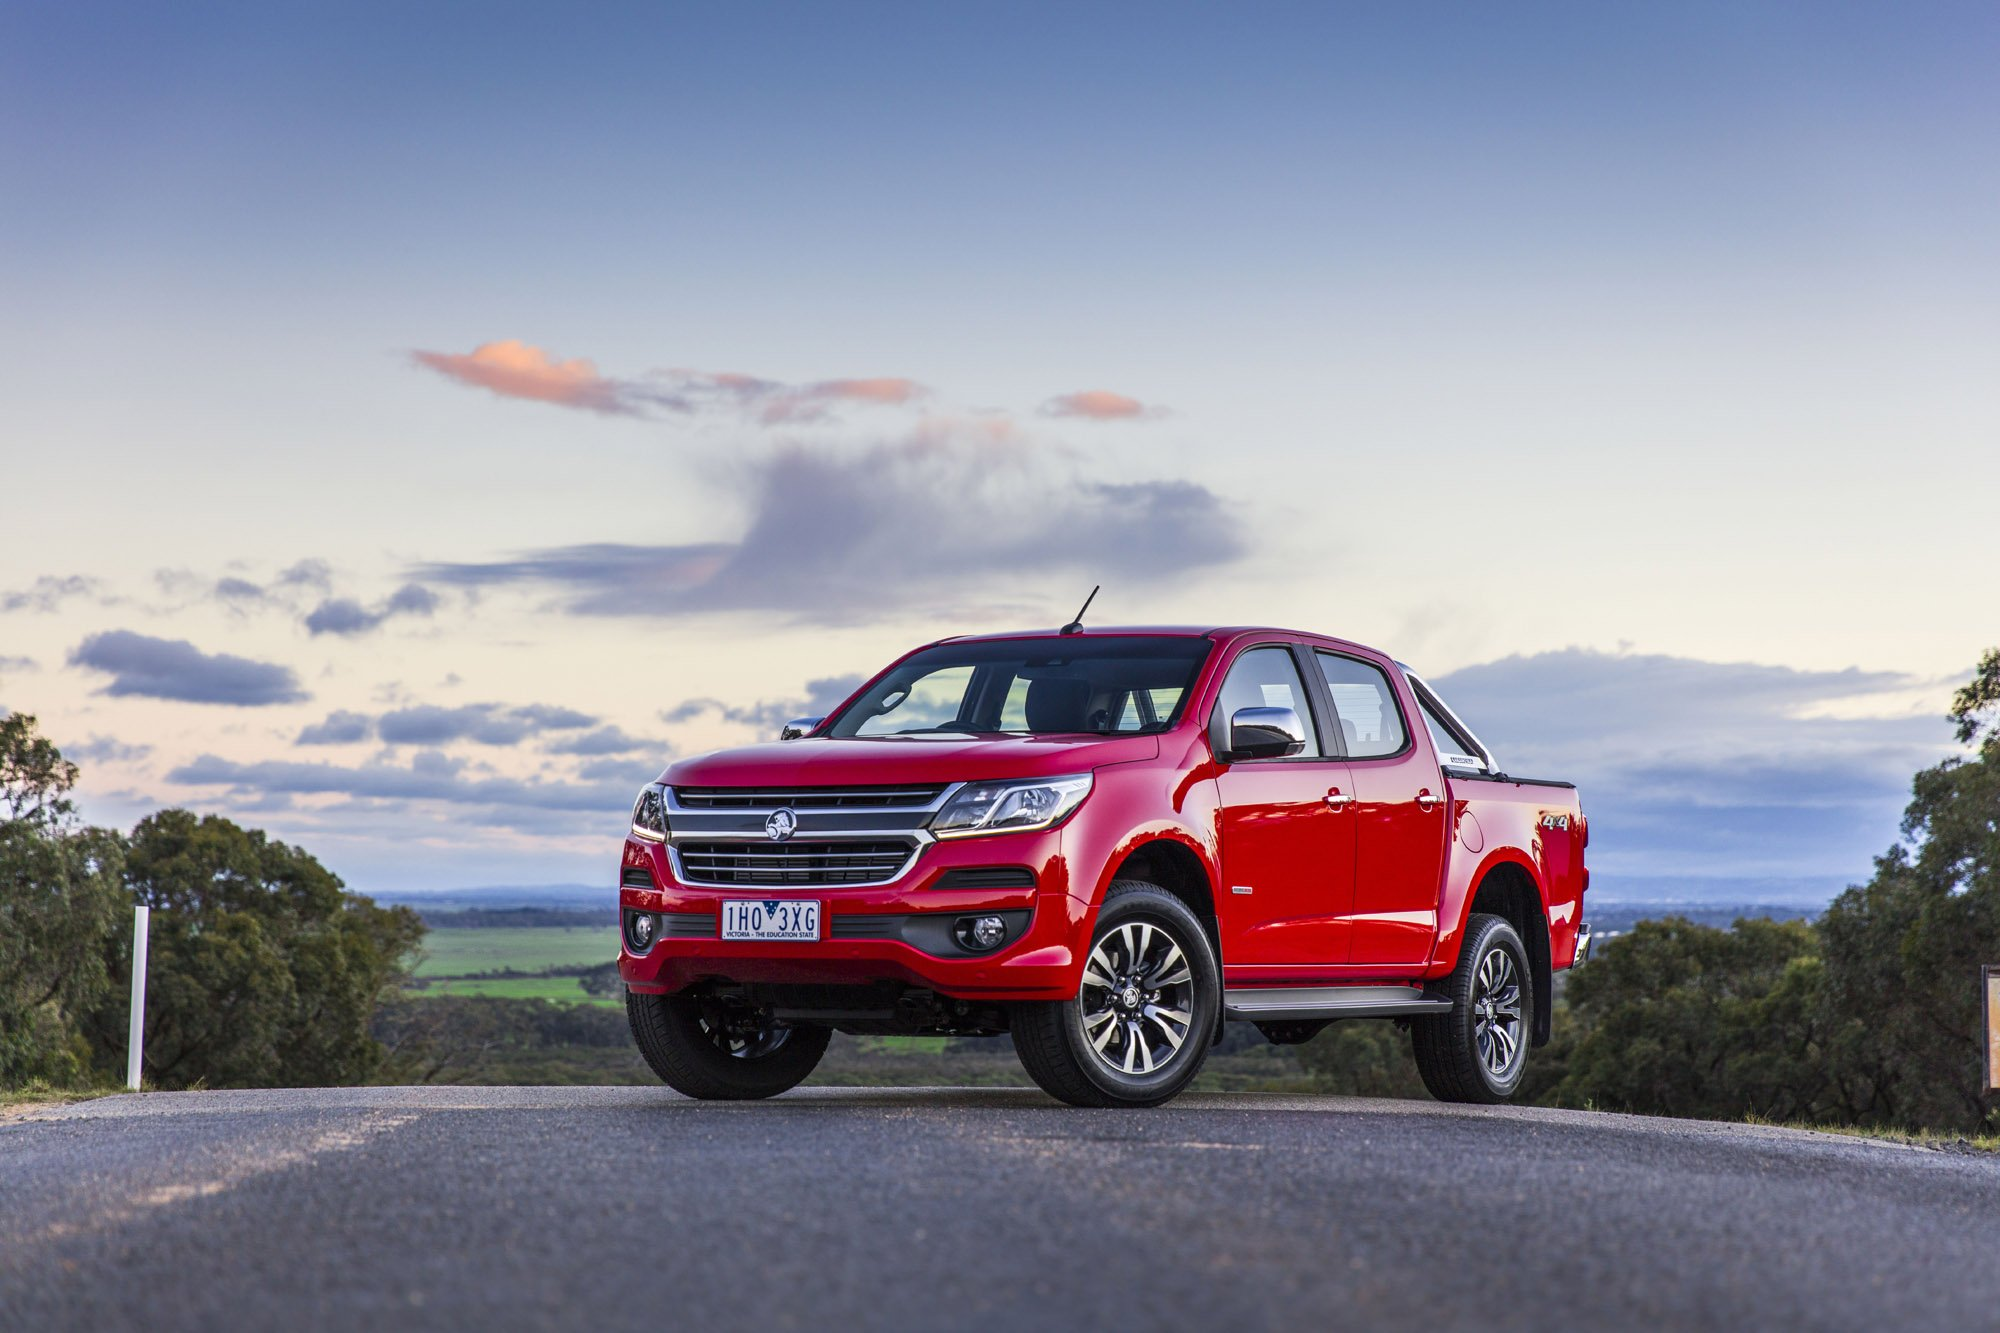 2017 Holden Colorado Review | CarAdvice